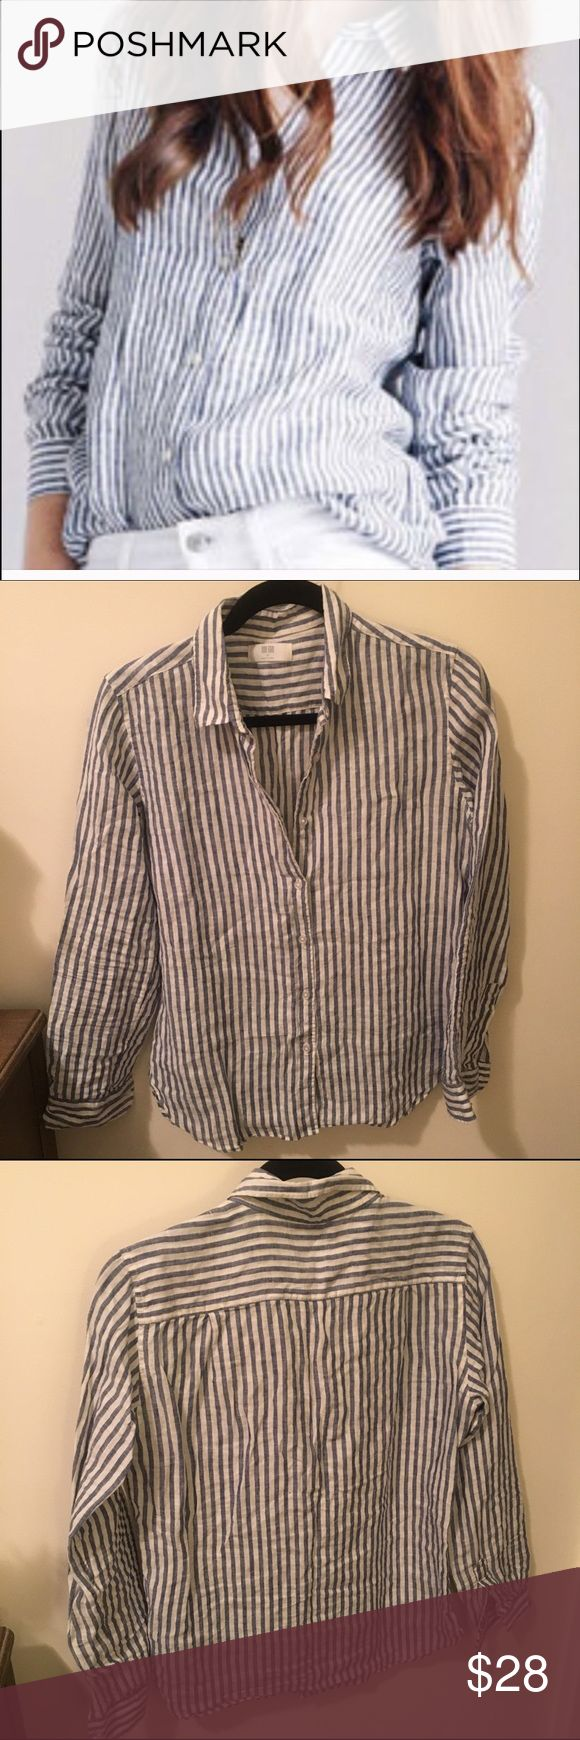 Uniqlo Linen Striped Button Down Shirt Uniqlo navy blue striped linen shirt. Excellent condition. Please note this is a Japanese M (more like a US small) Uniqlo Tops Button Down Shirts